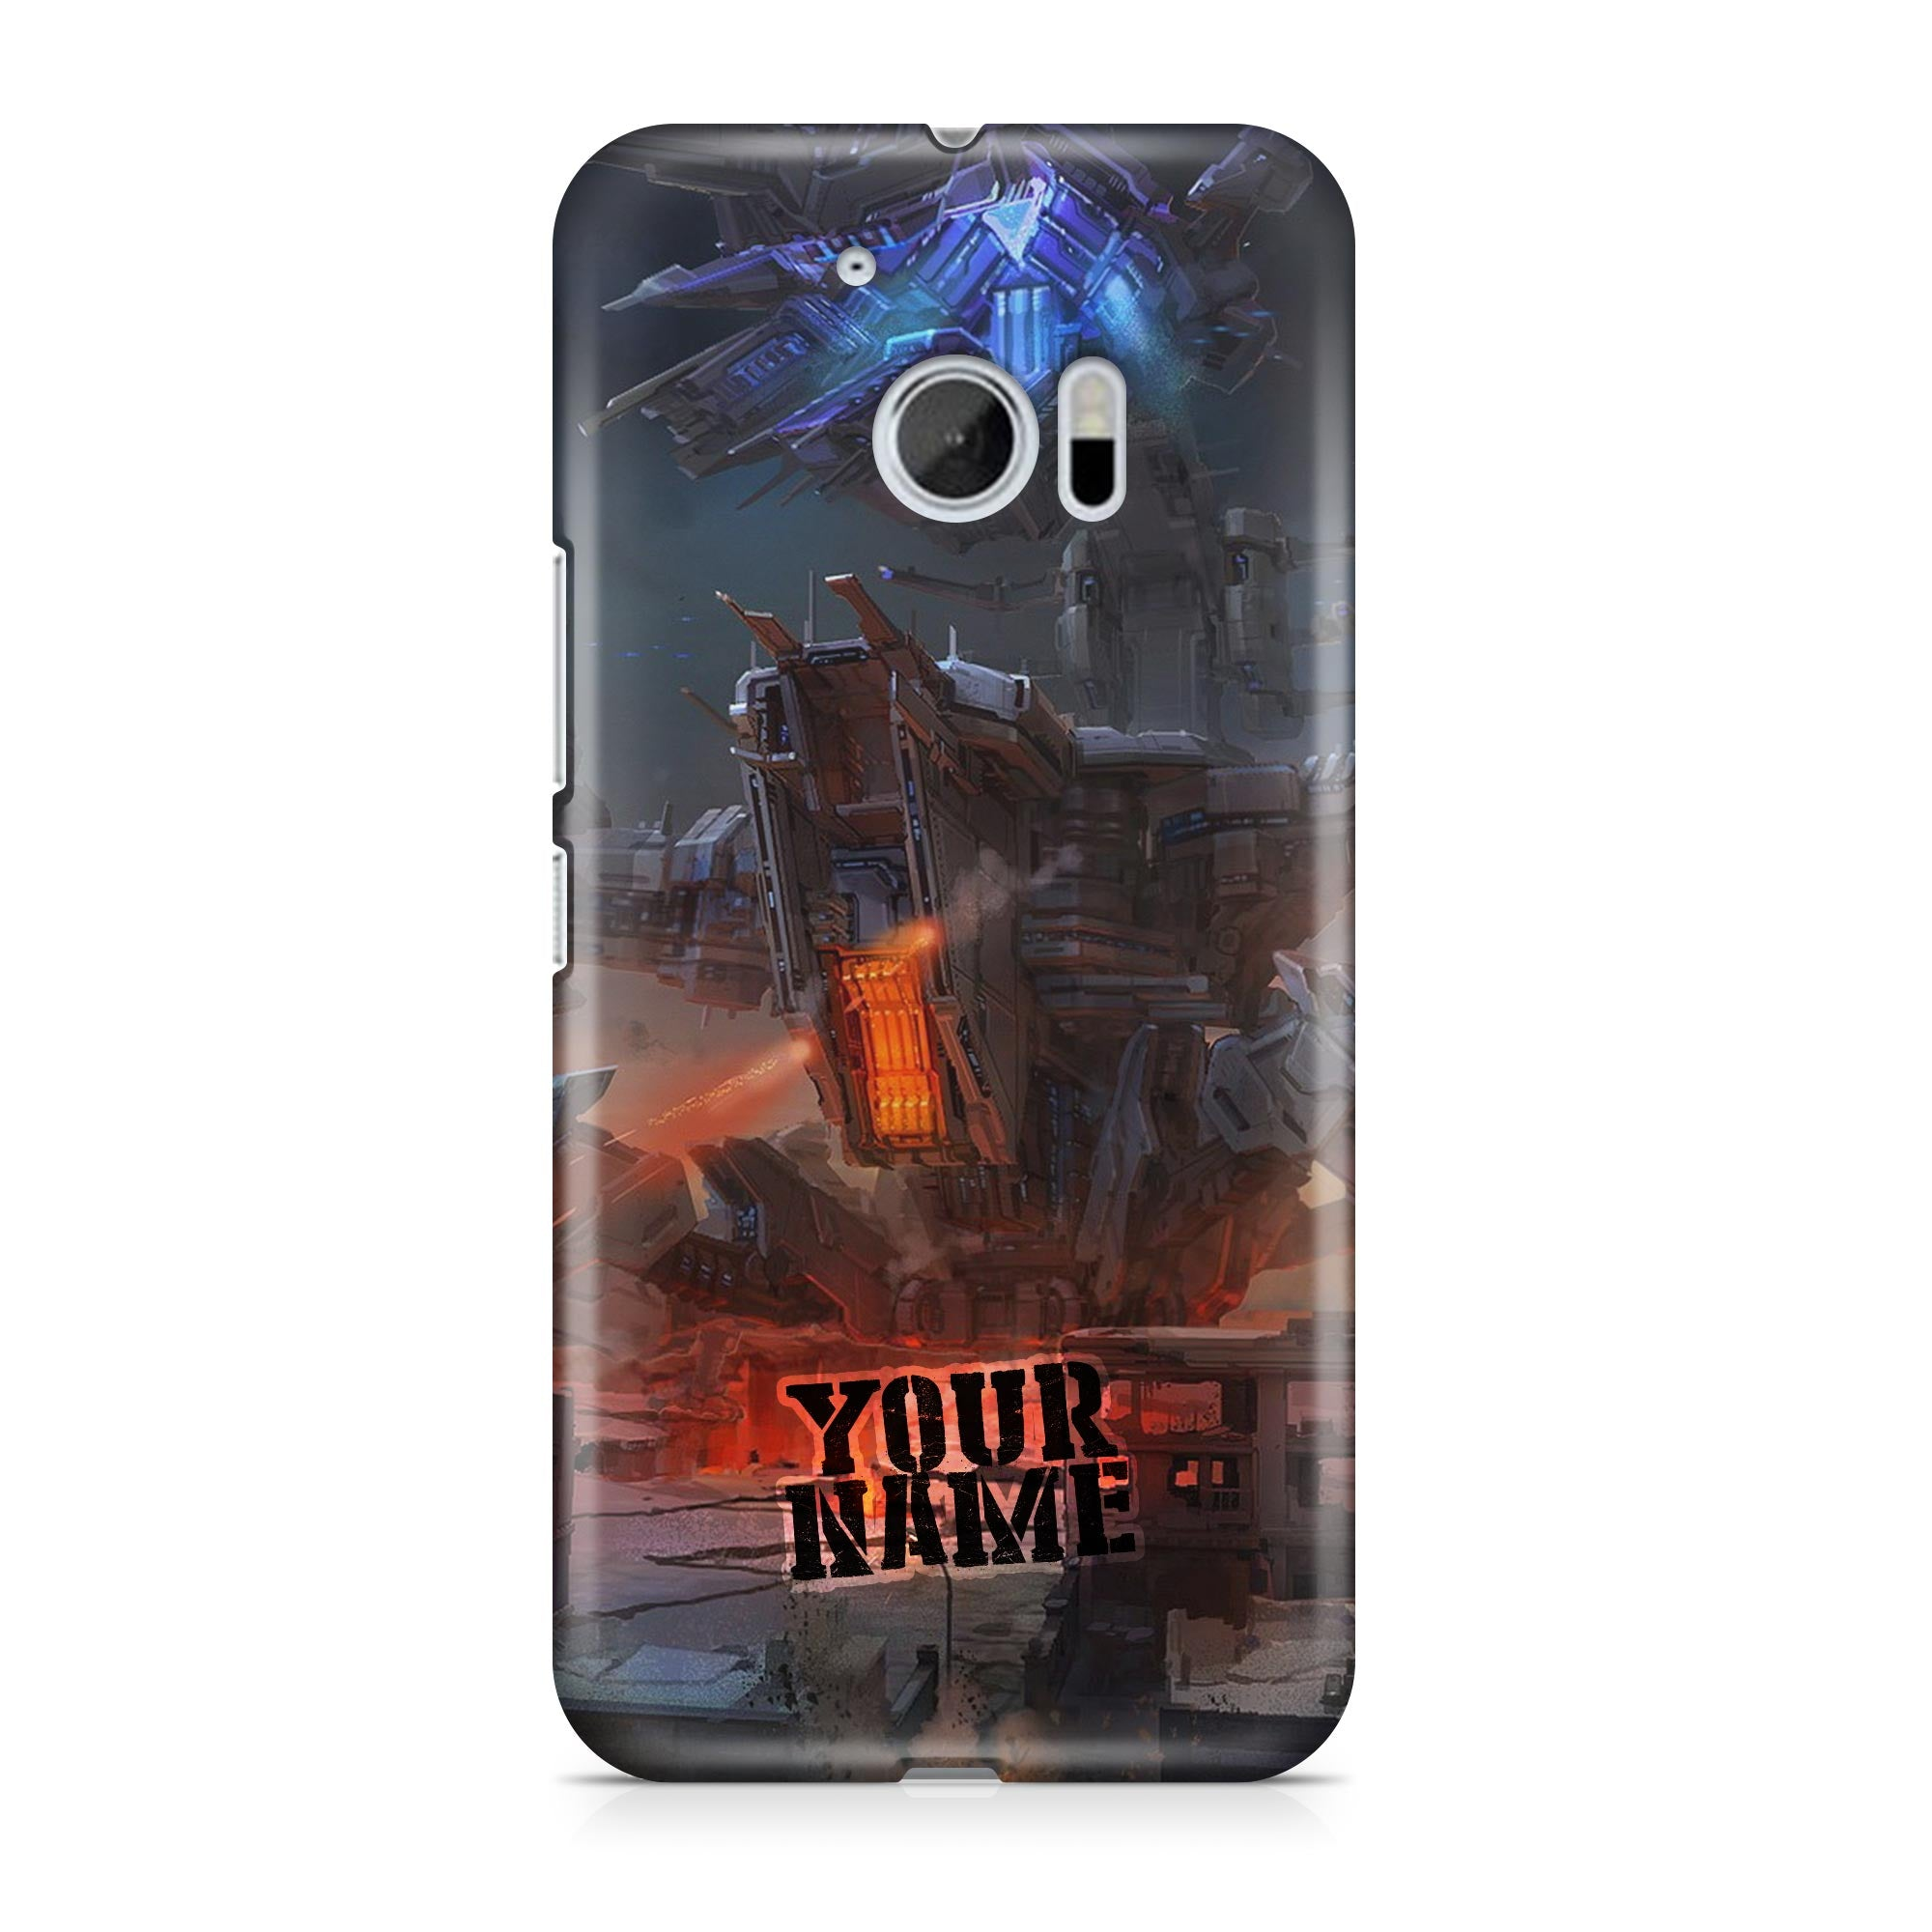 Space Robot Gunners Super Android Games Phone Cases Cover